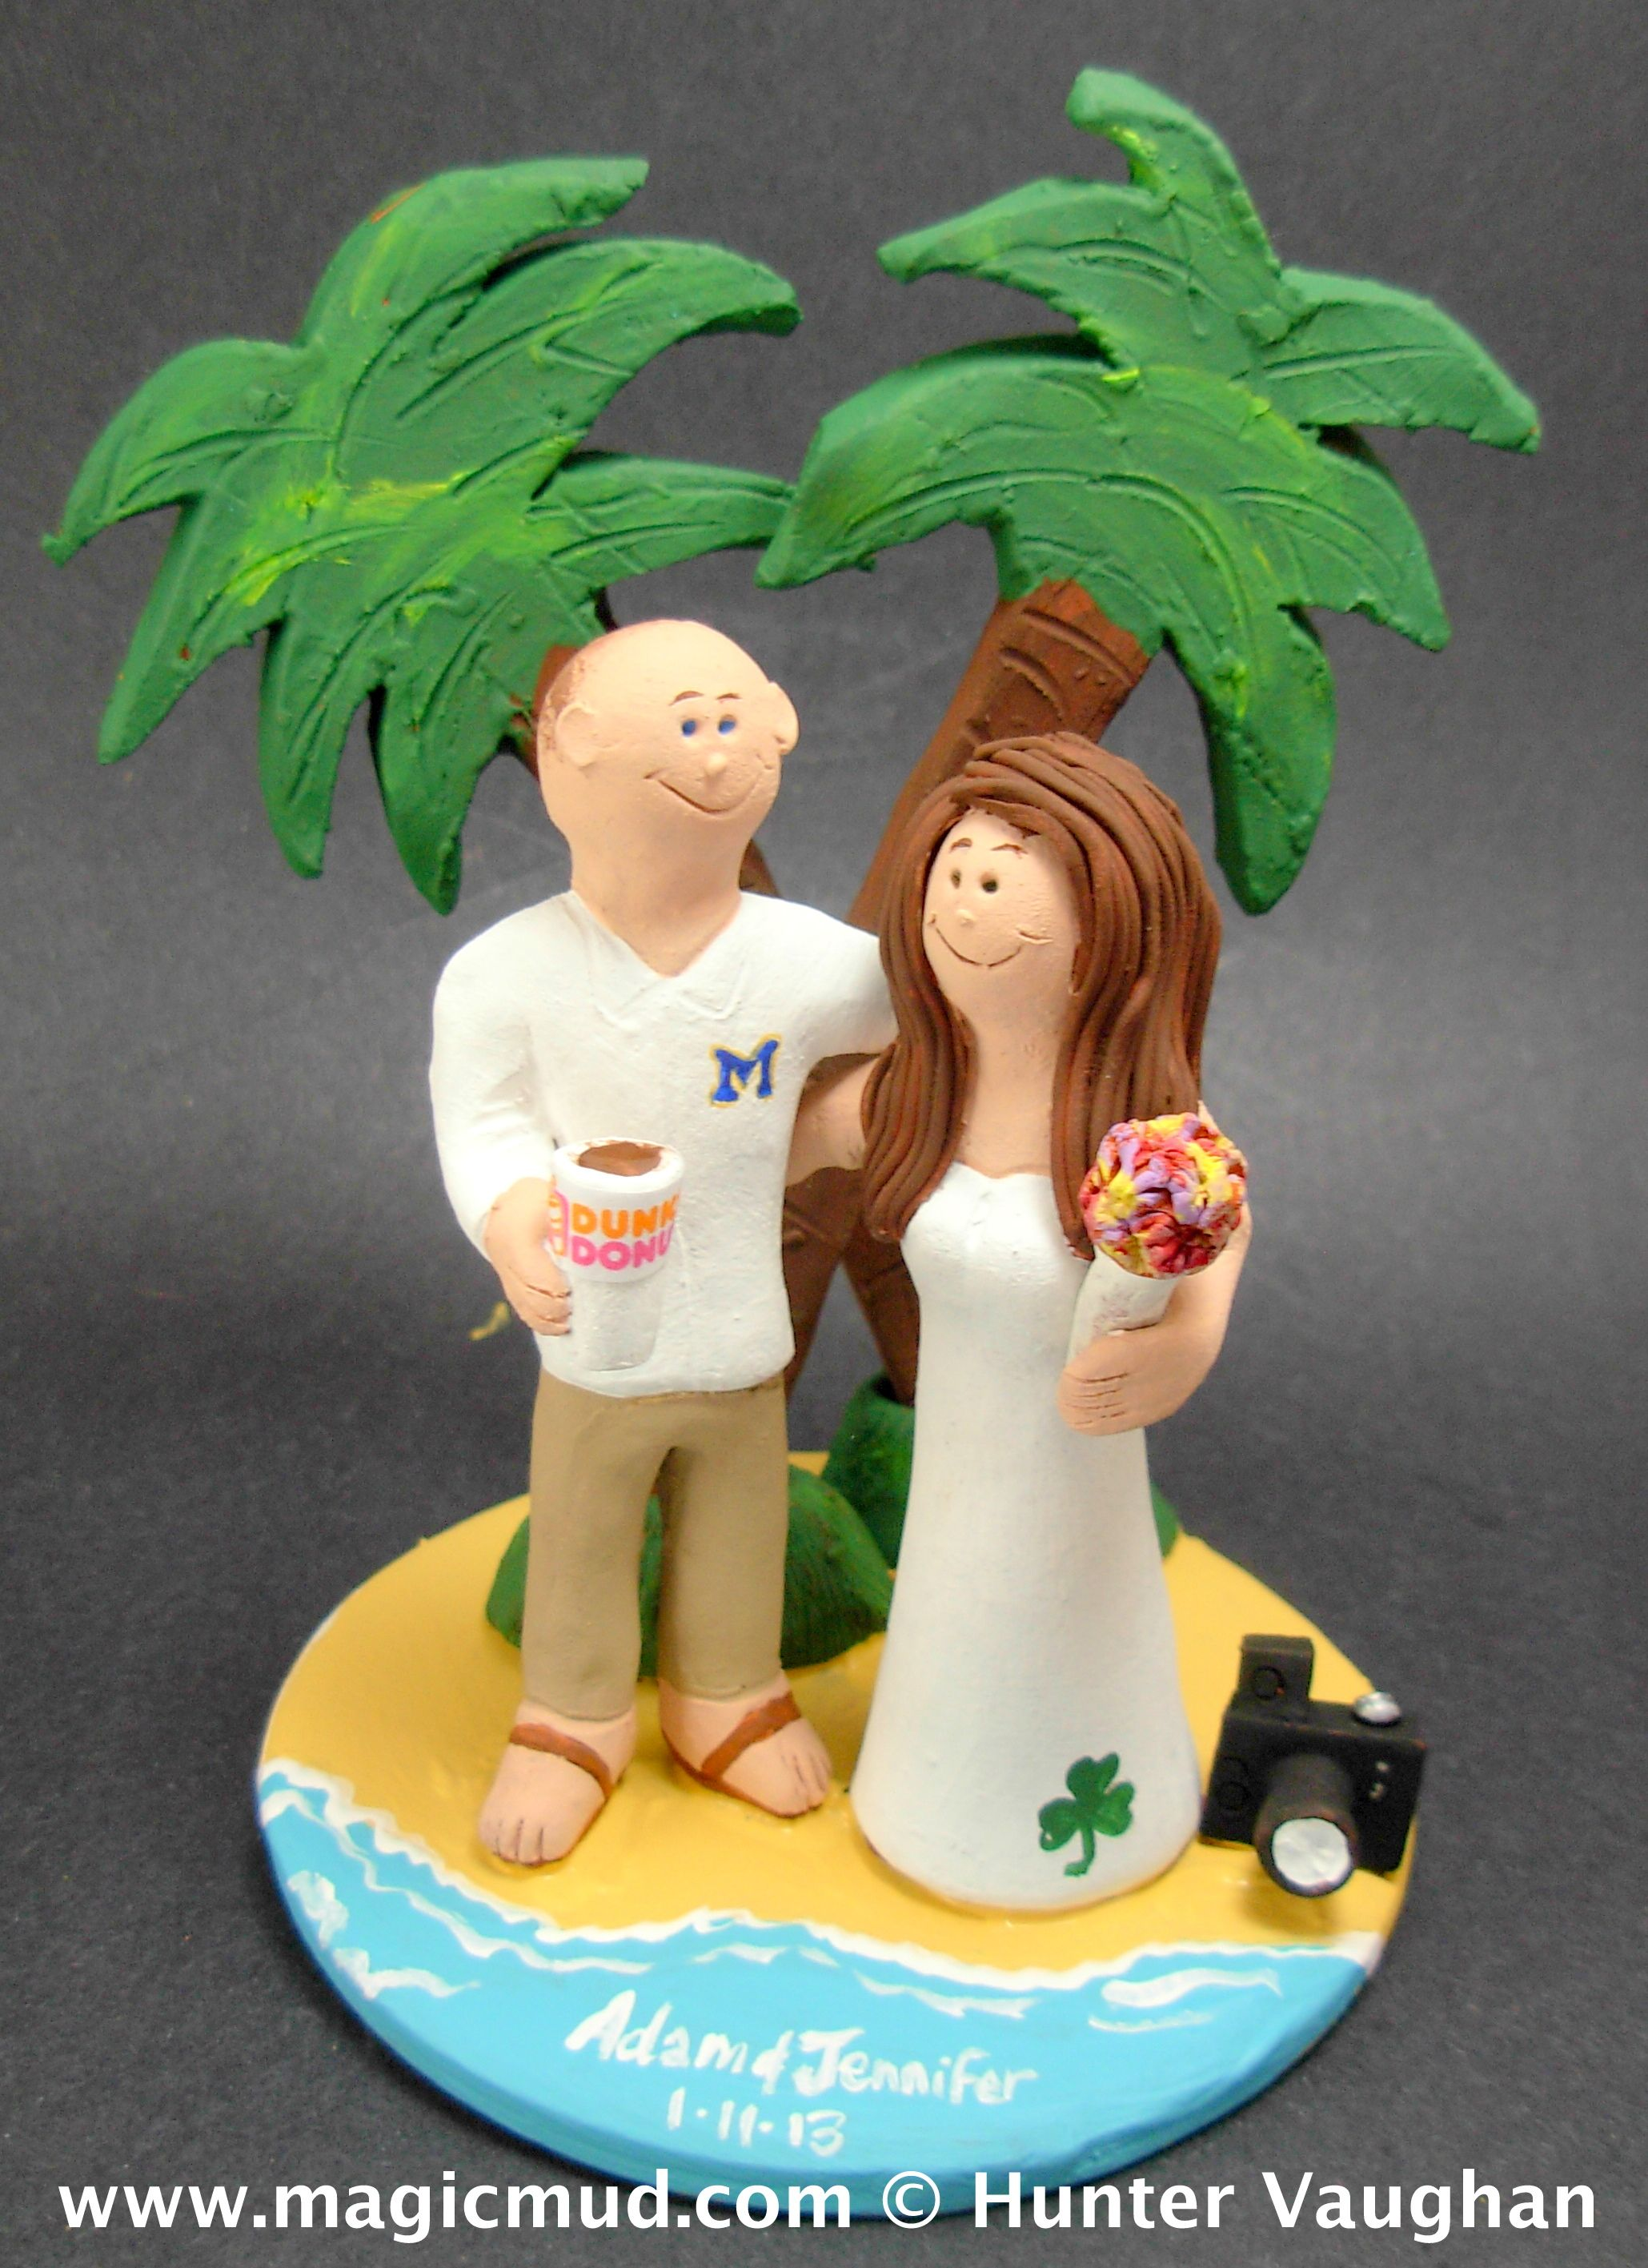 Under the palm trees on beach wedding cake topper by gicmud